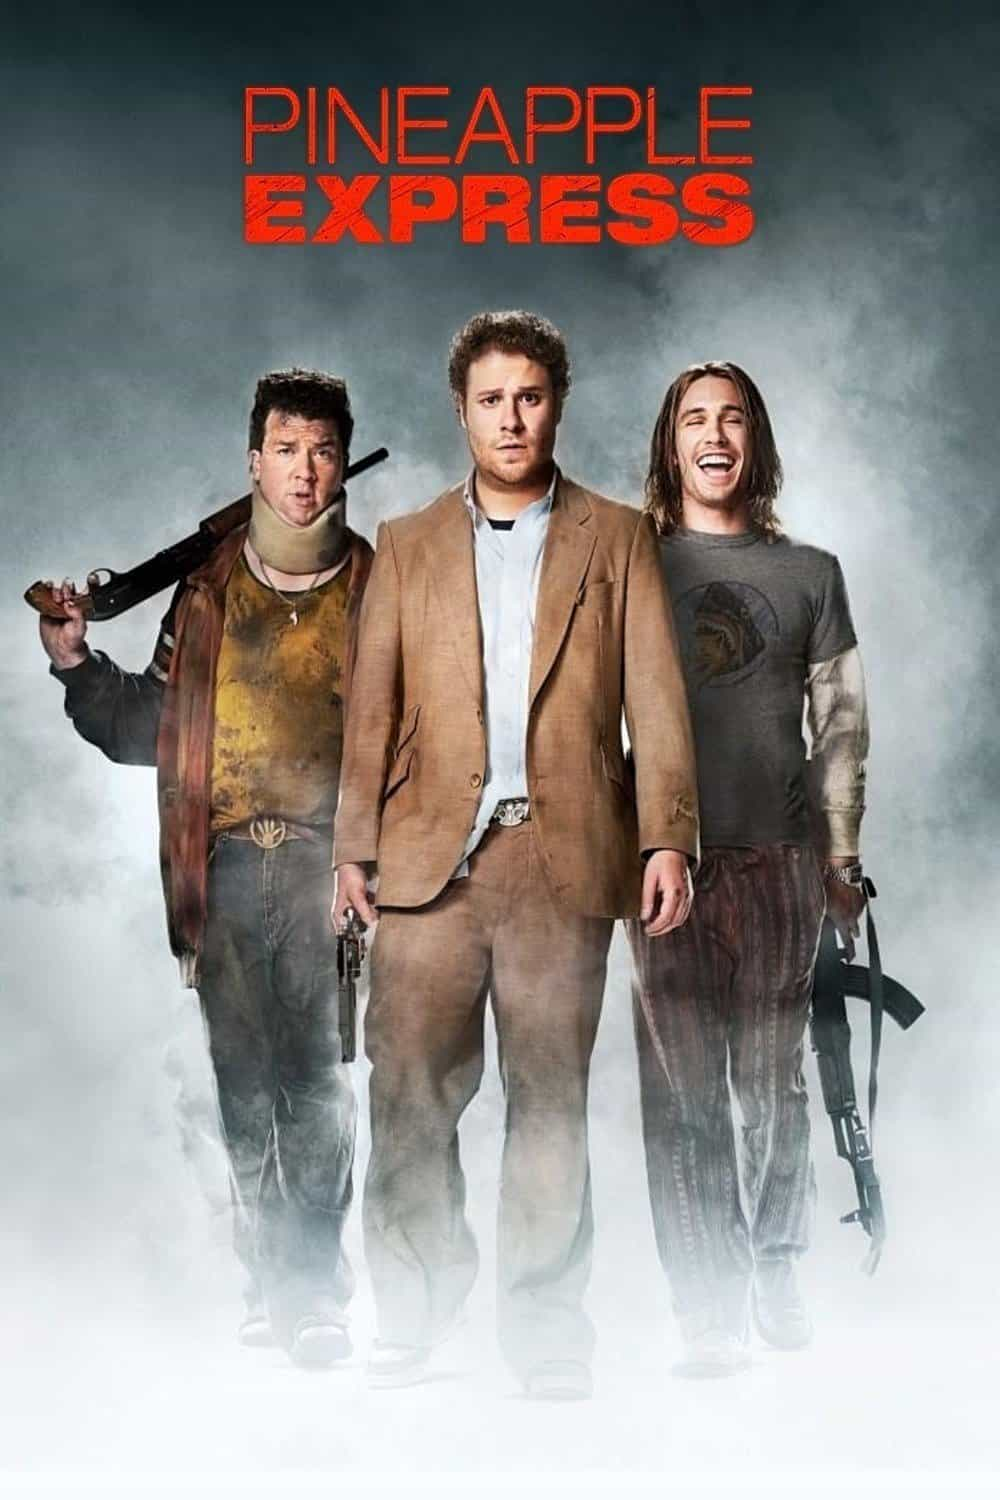 Pineapple Express, 2008